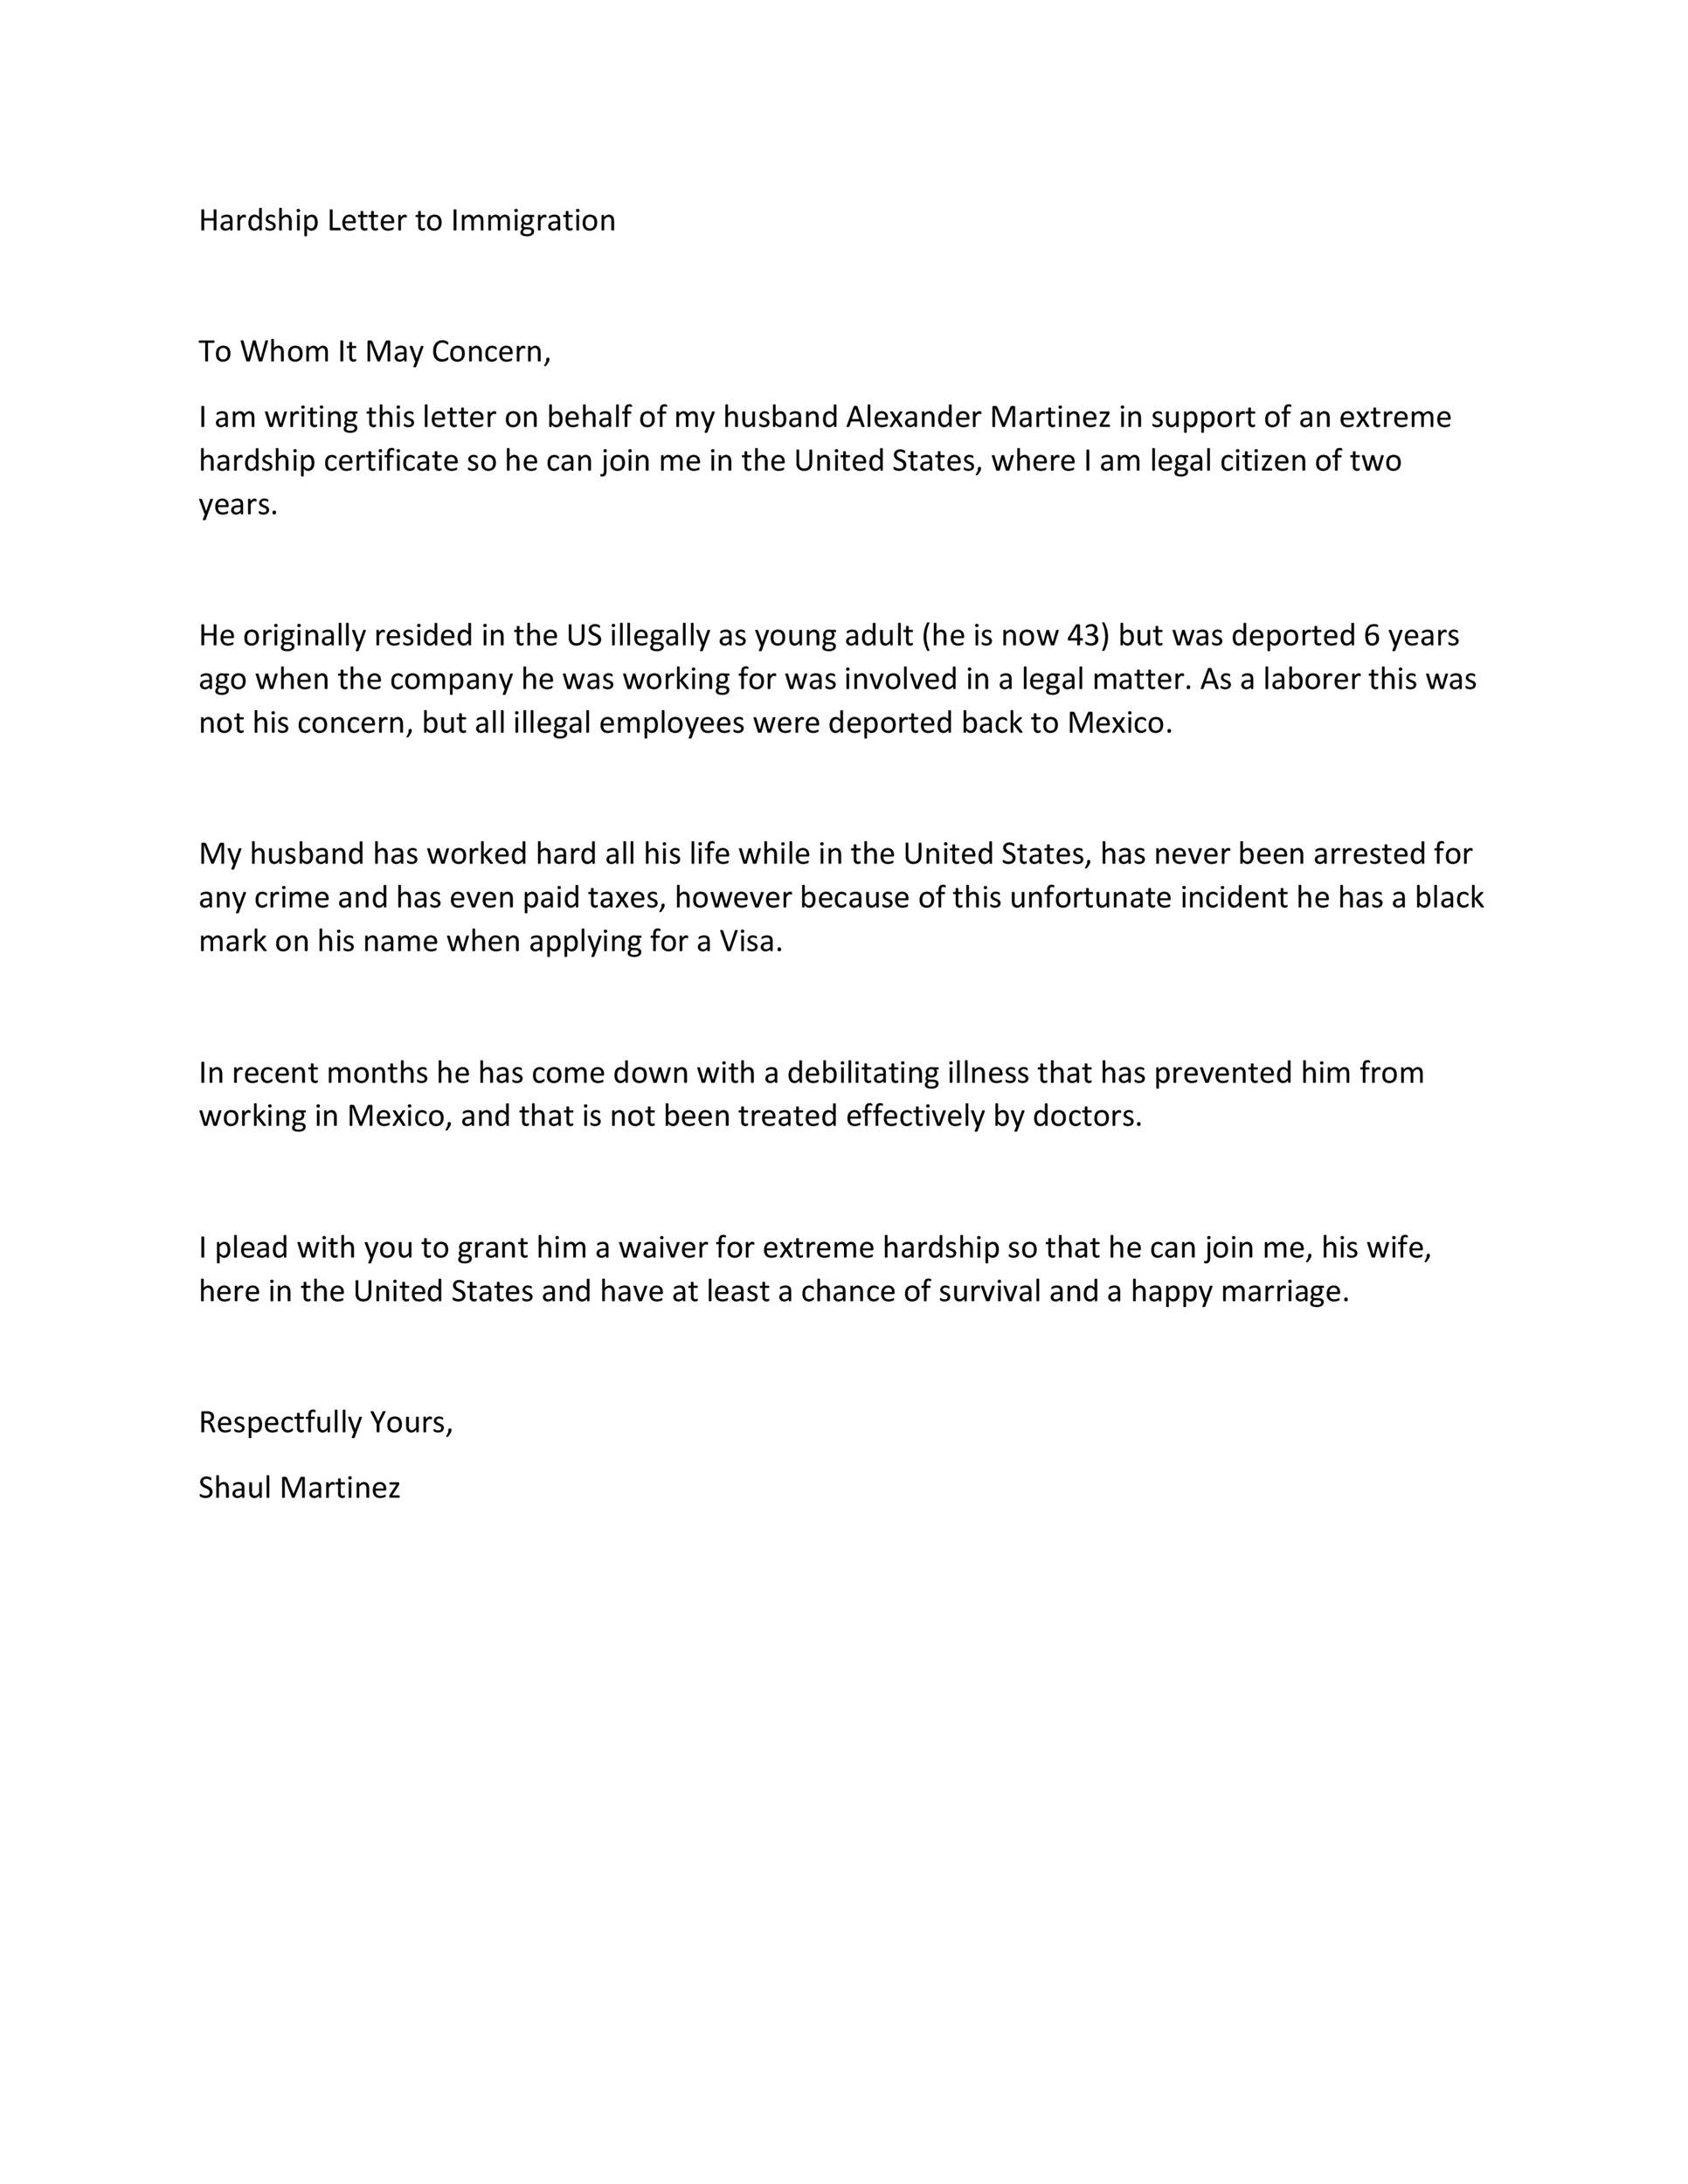 Free Hardship Letter Template 10